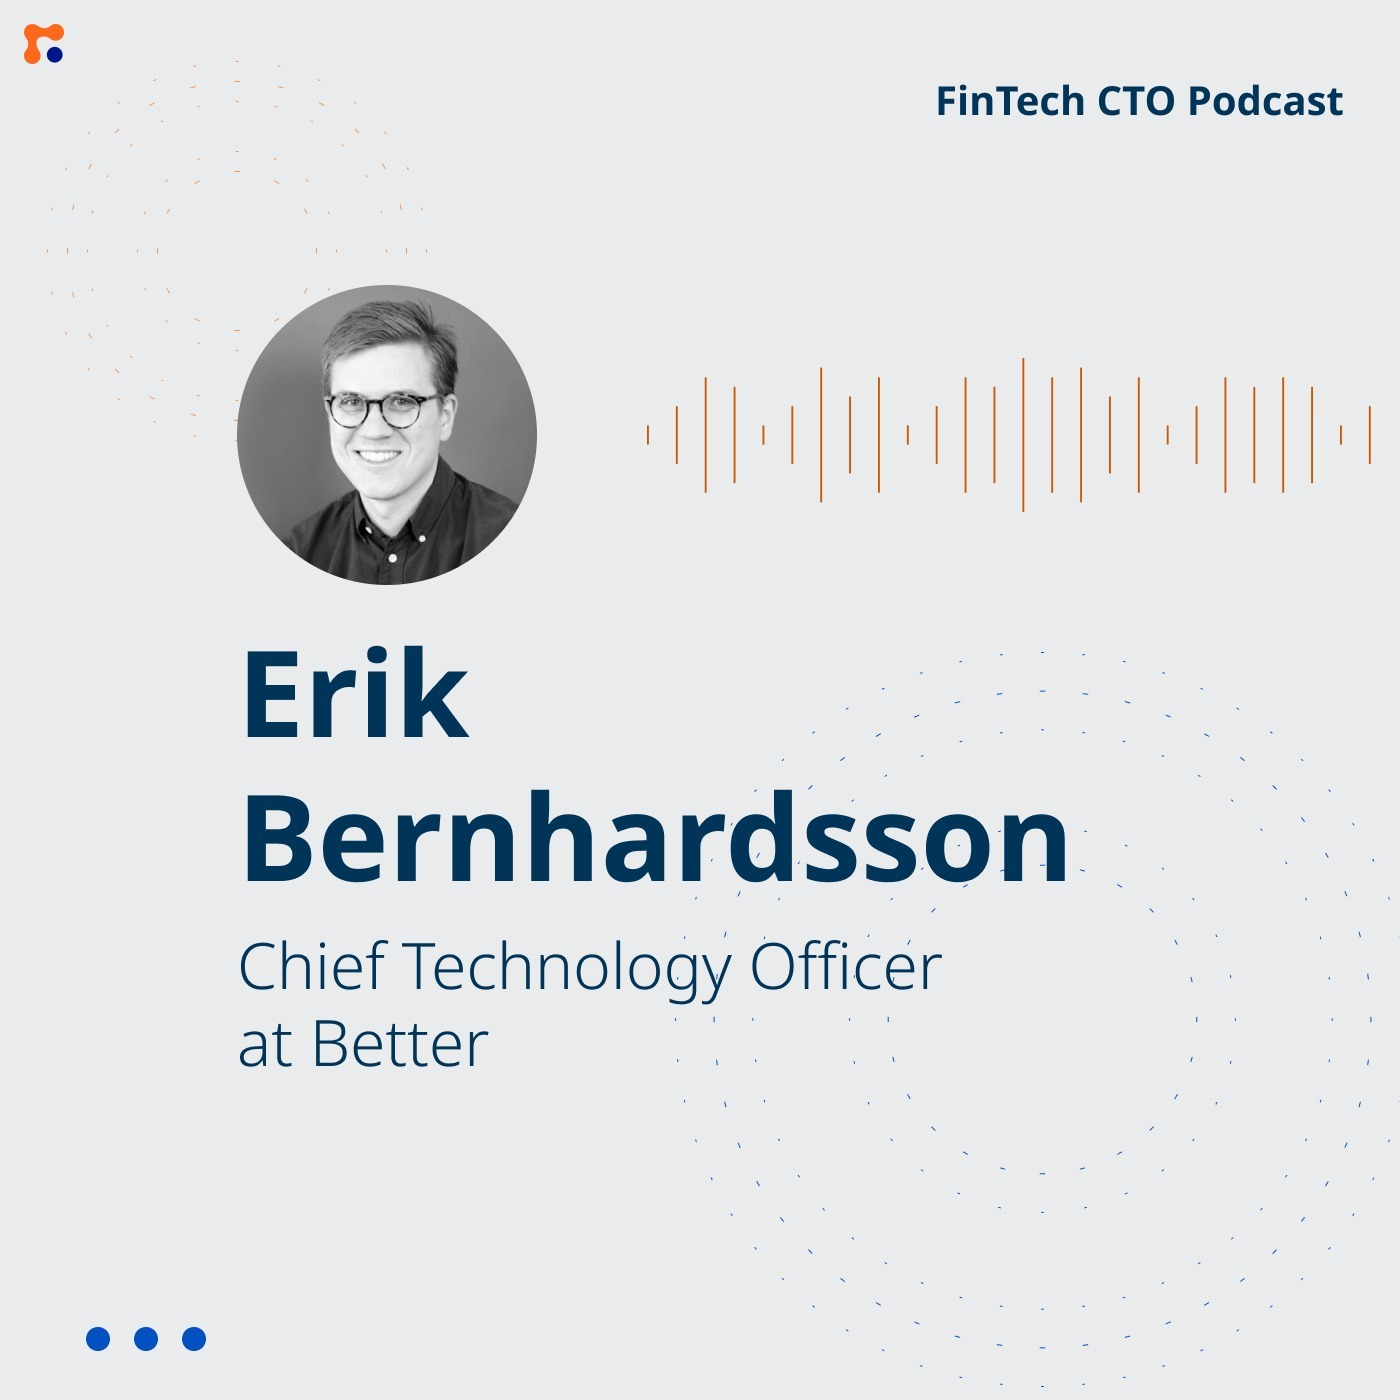 Podcast #6 Erik Bernhardsson: Fixing Broken Industries With Technology. Finance Is Next